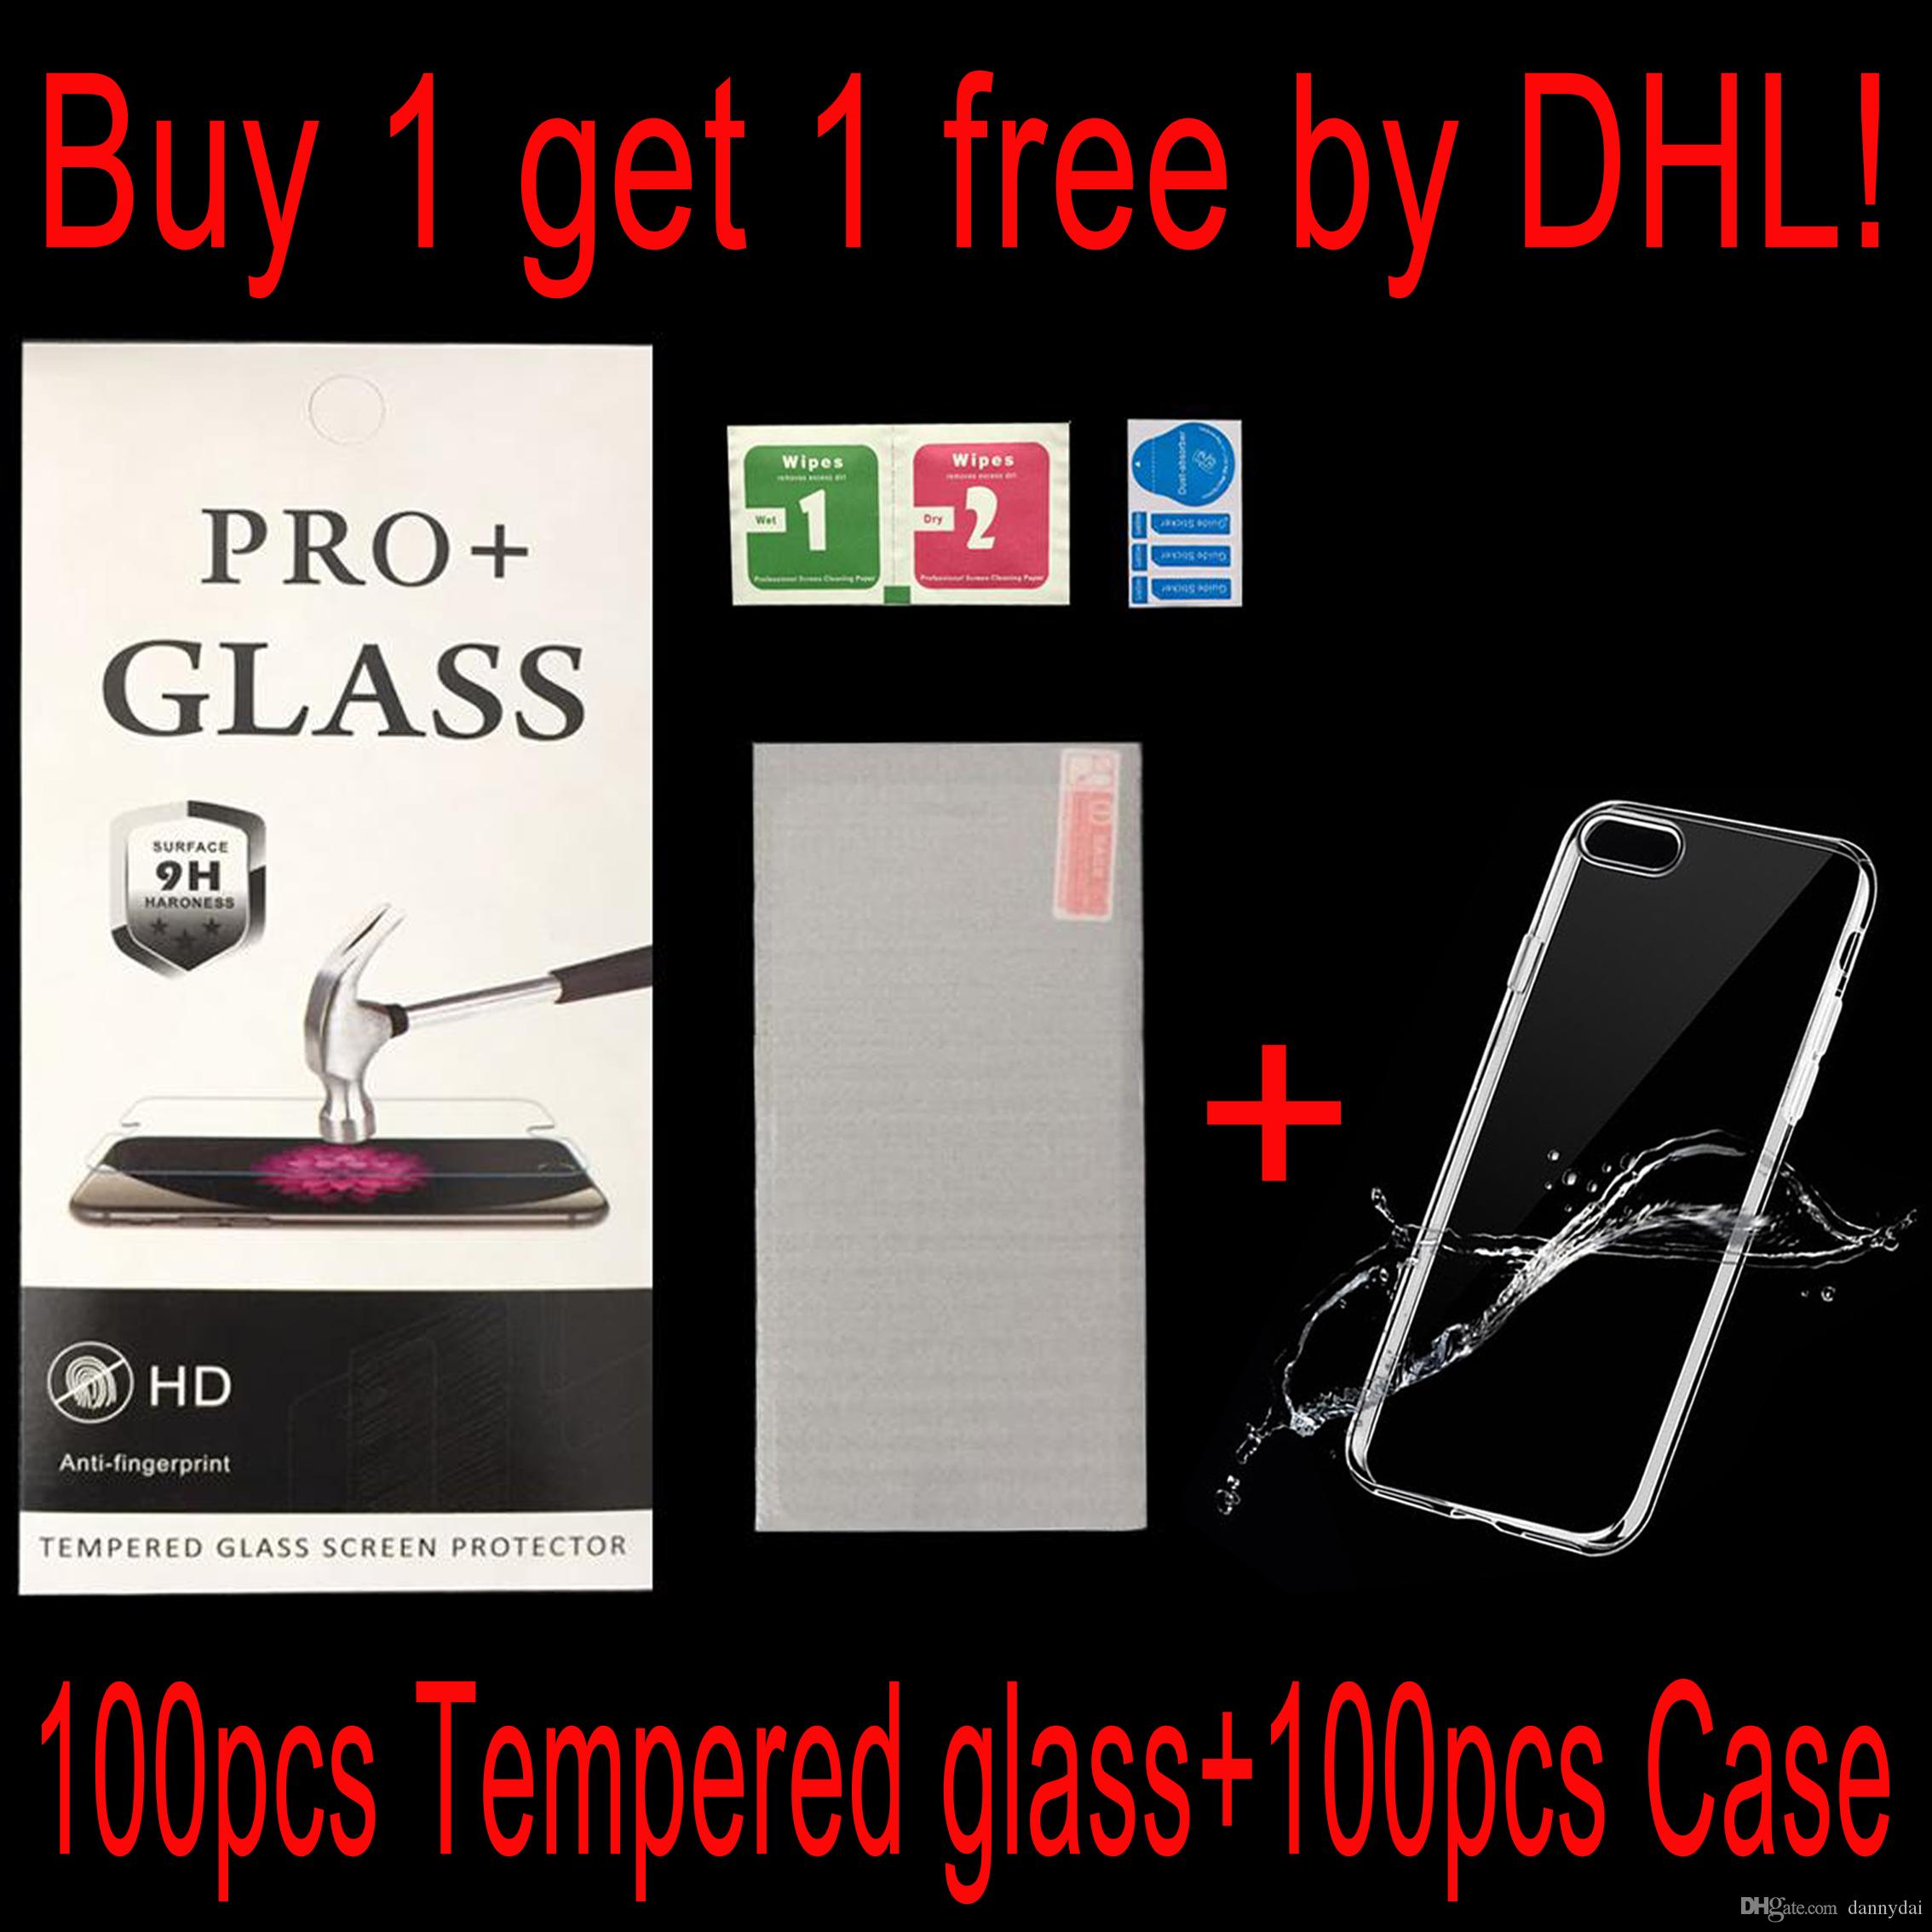 Tempered Glass 100 Free Case For Xiaomi Redmi Note 4x 4a Note 5 Max2 Galaxy S8 Wholesale Buy 1 Get 1 Free Mobile Phone Screen Protectors Phone Screen